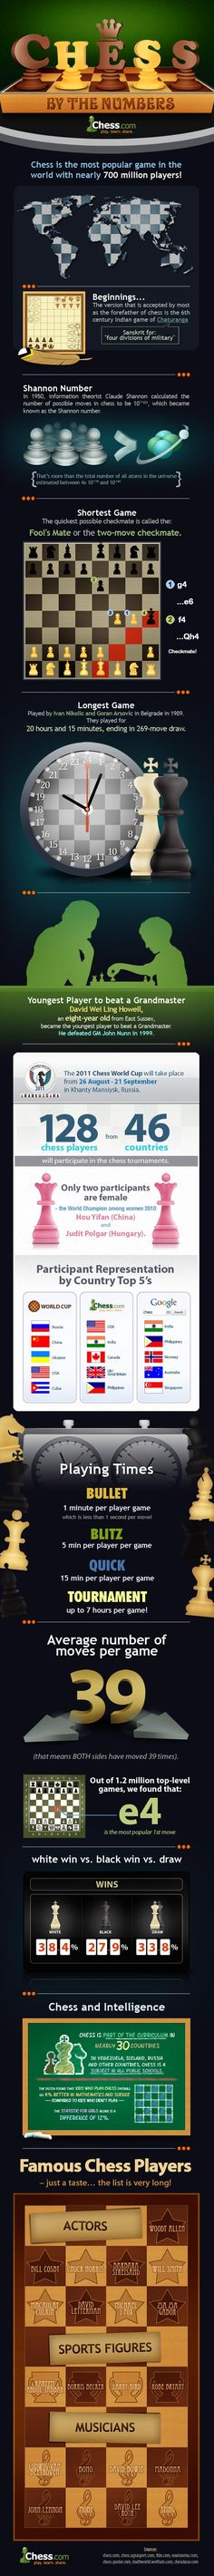 Chess by the Numbers -- Some interesting statistics about the greatest game on Earth -- InfoGraphic Chess Quotes, Chess Books, Chess Strategies, How To Play Chess, Most Popular Games, Chess Players, Kings Game, Chess Pieces, Family Games